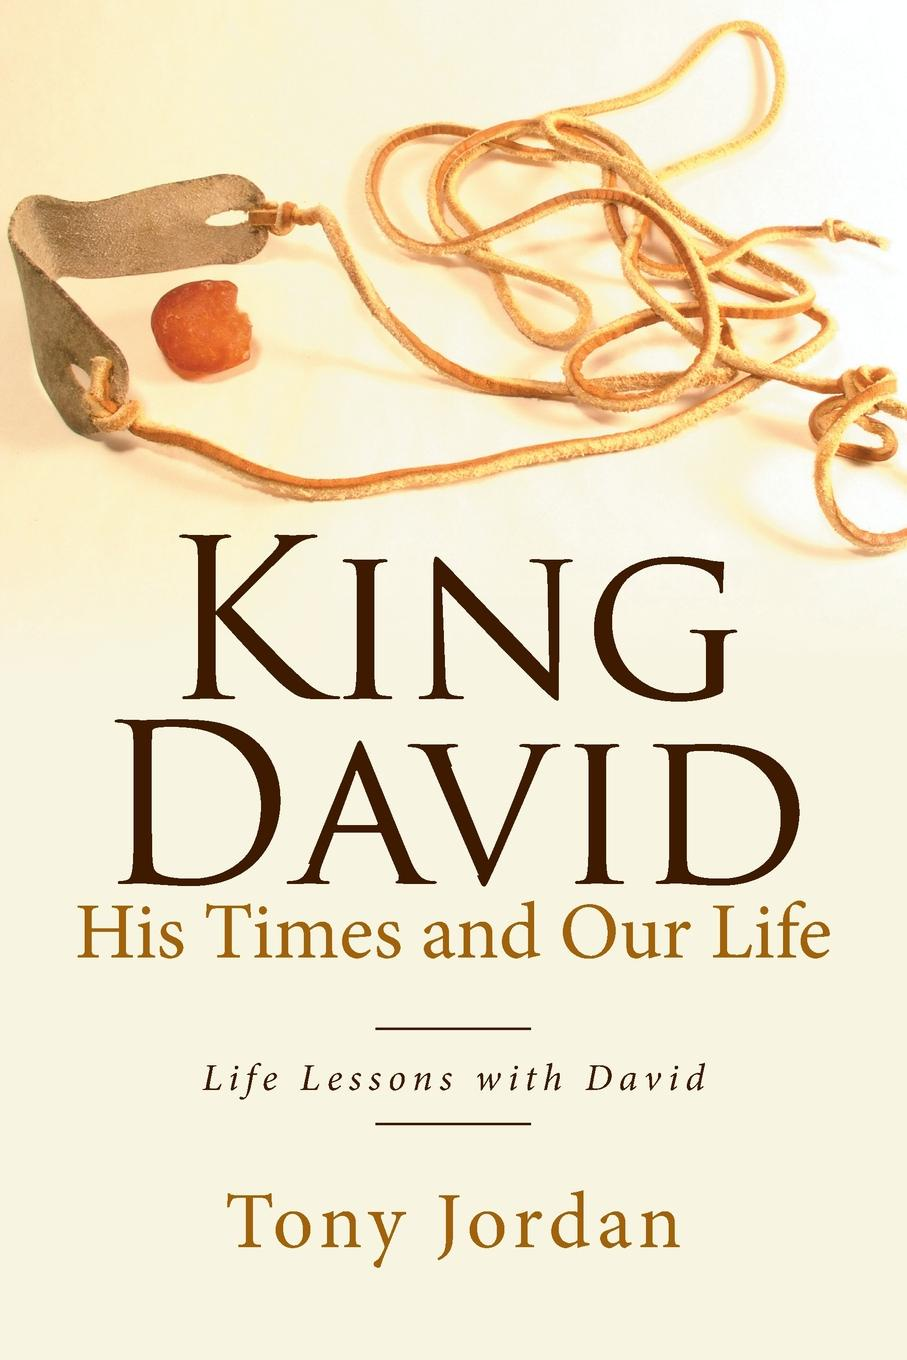 Tony Jordan King David His Times and Our Life. Life Lessons with